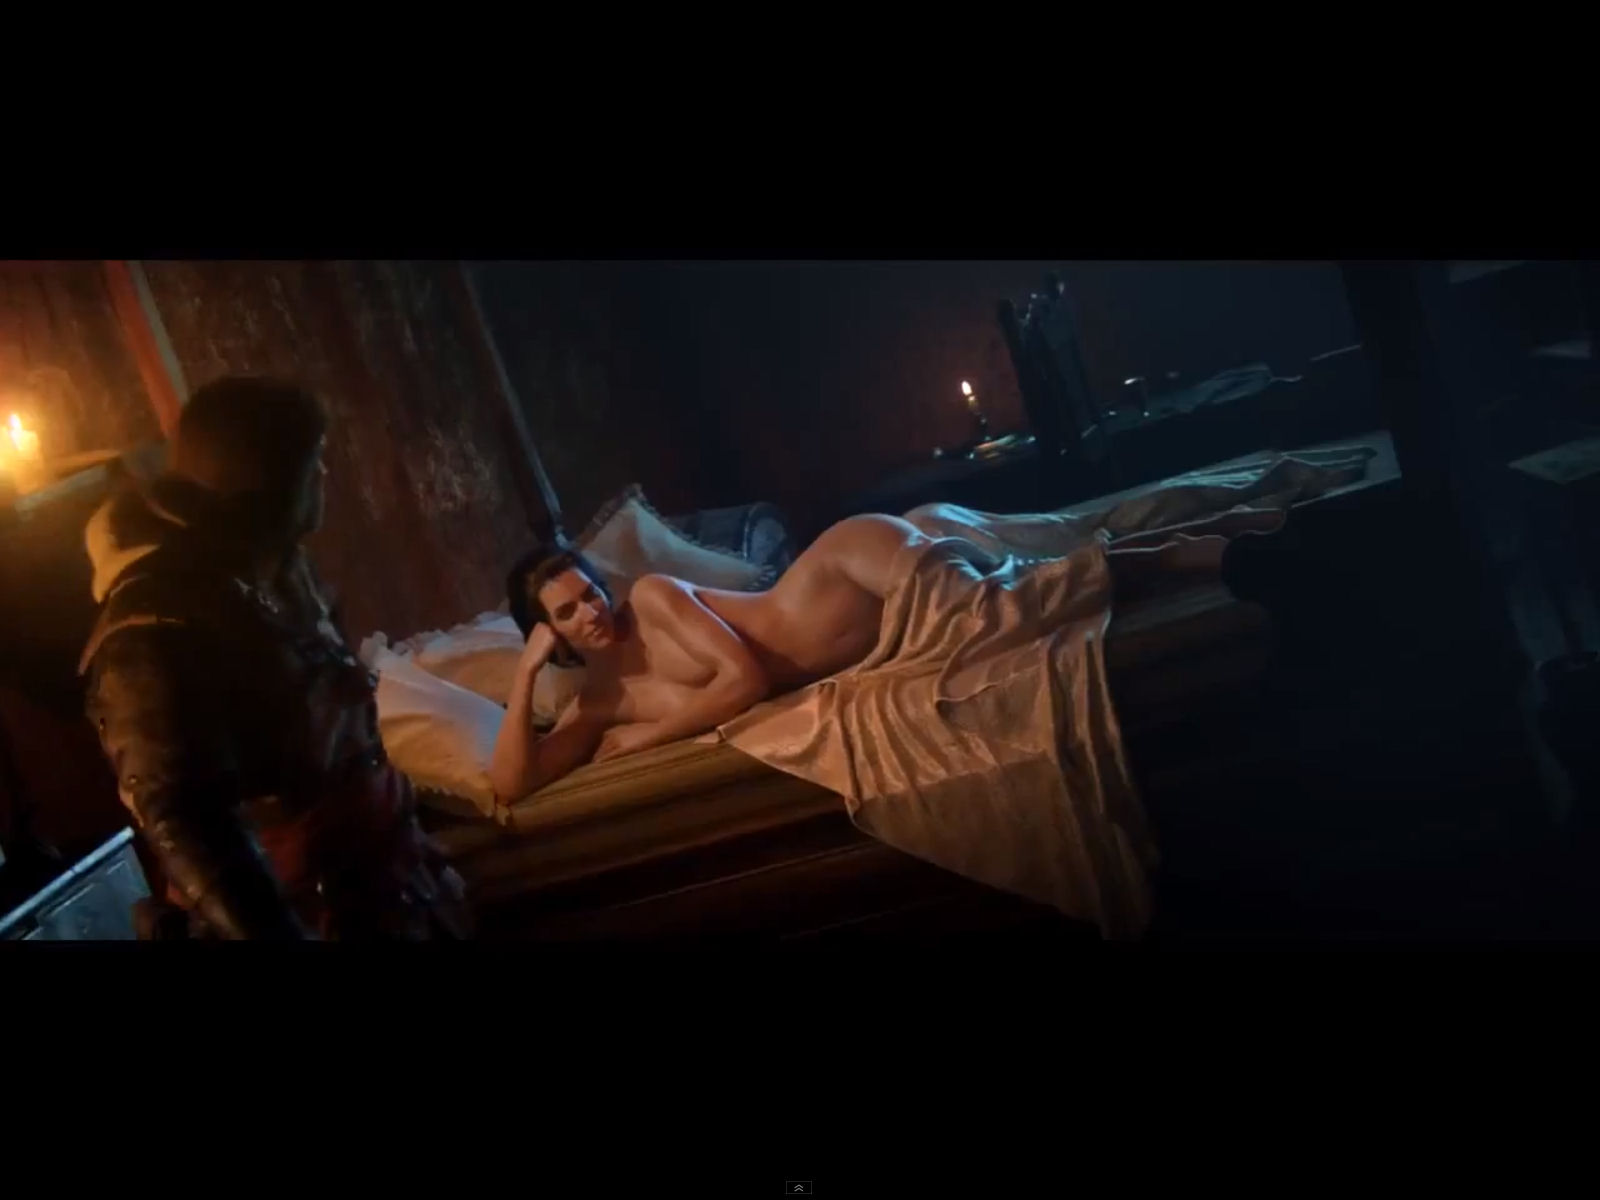 Assassin's creed brotherhood nude girl nackt slave